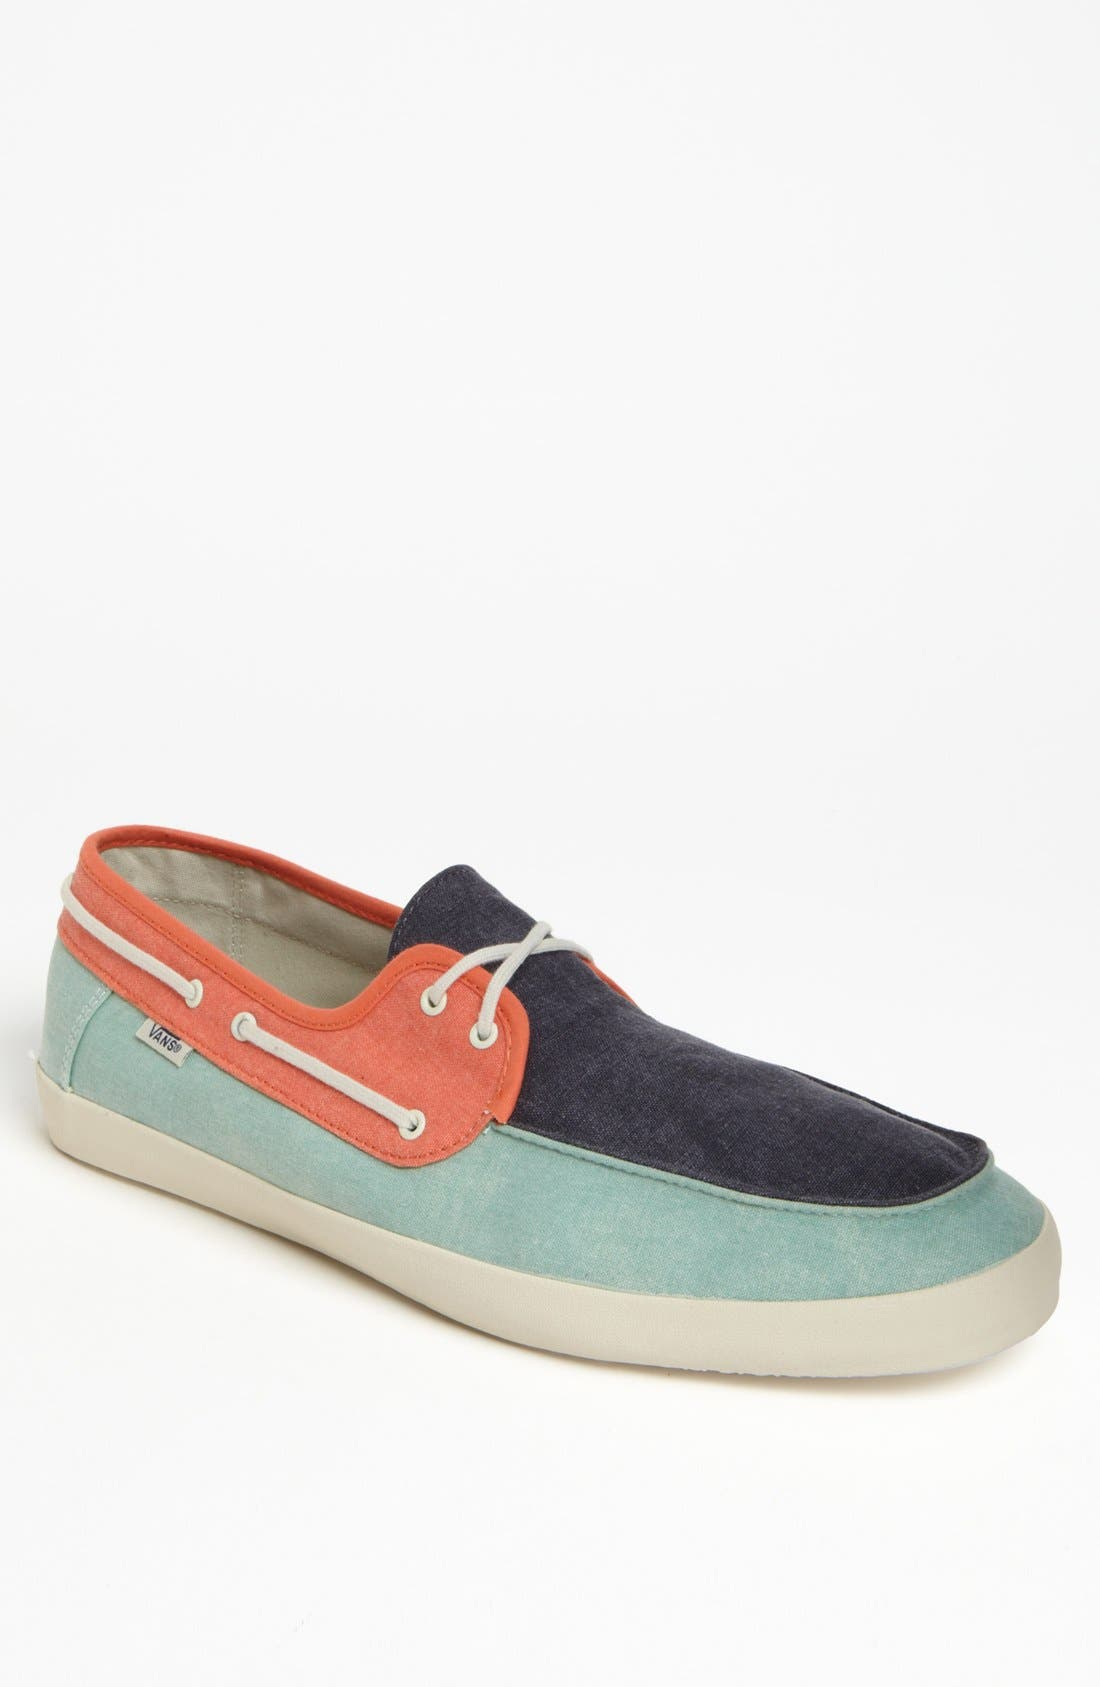 Alternate Image 1 Selected - Vans 'Chauffeur' Boat Shoe (Men)